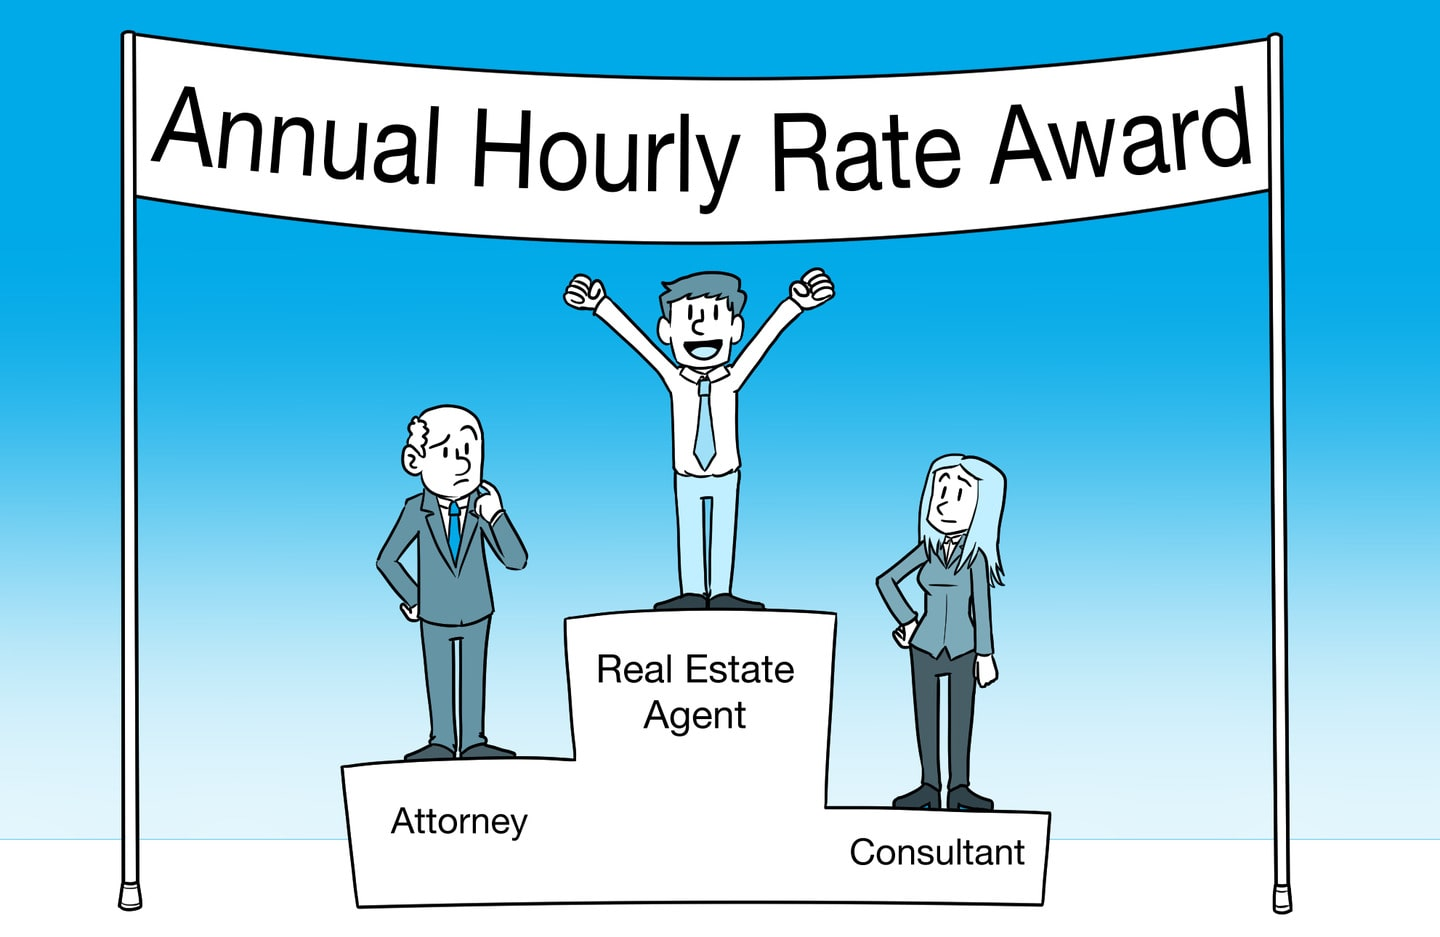 Real estate broker winning the Annual Hourly Rate Award at top of Olympics stand